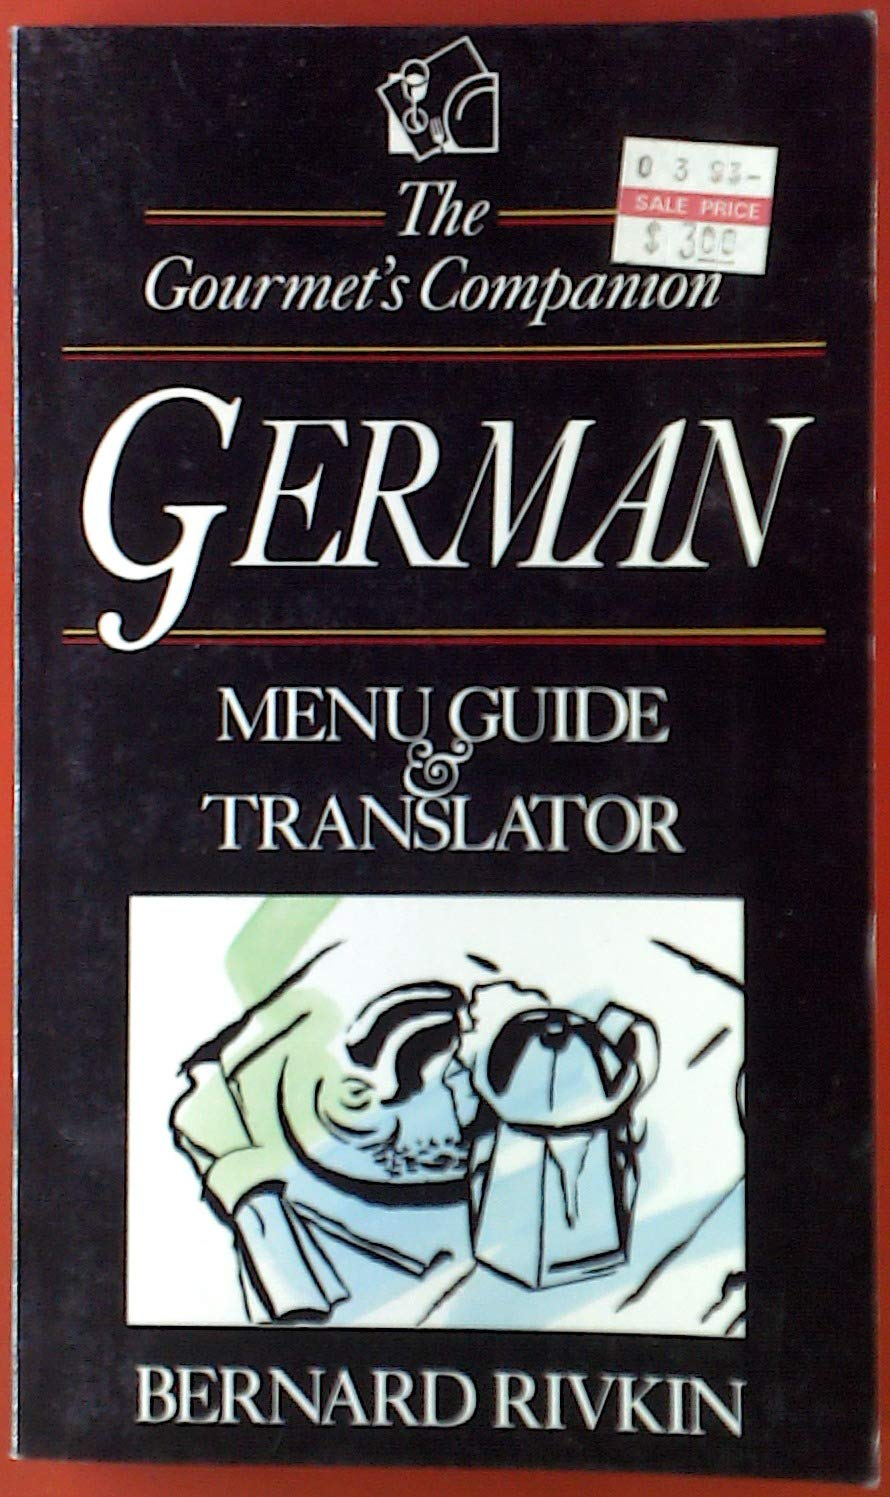 The Gourmets Companion German Menu Guide /& Translator